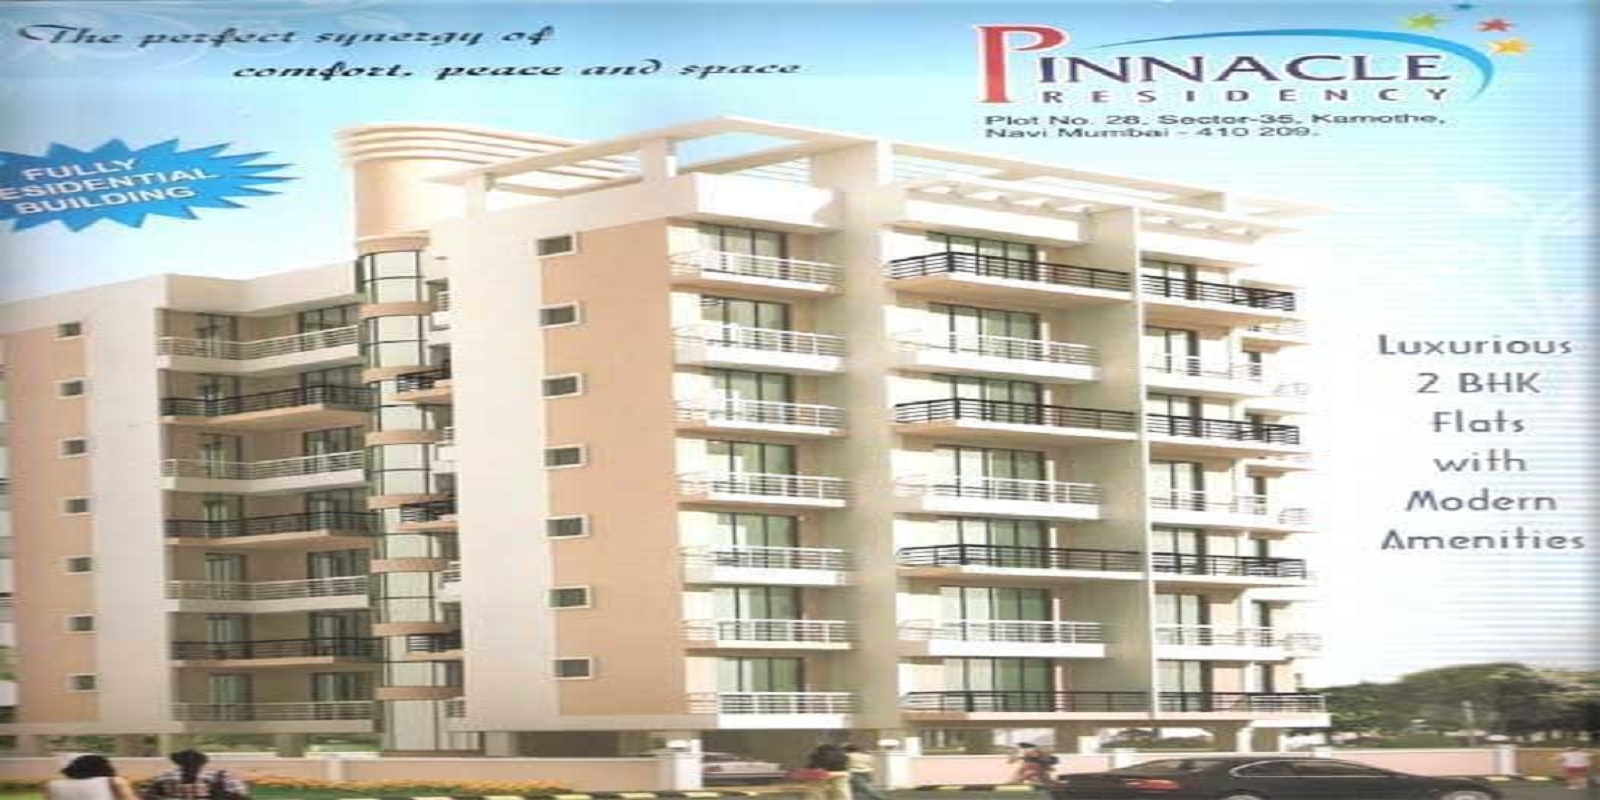 pinnacle residency project project large image1